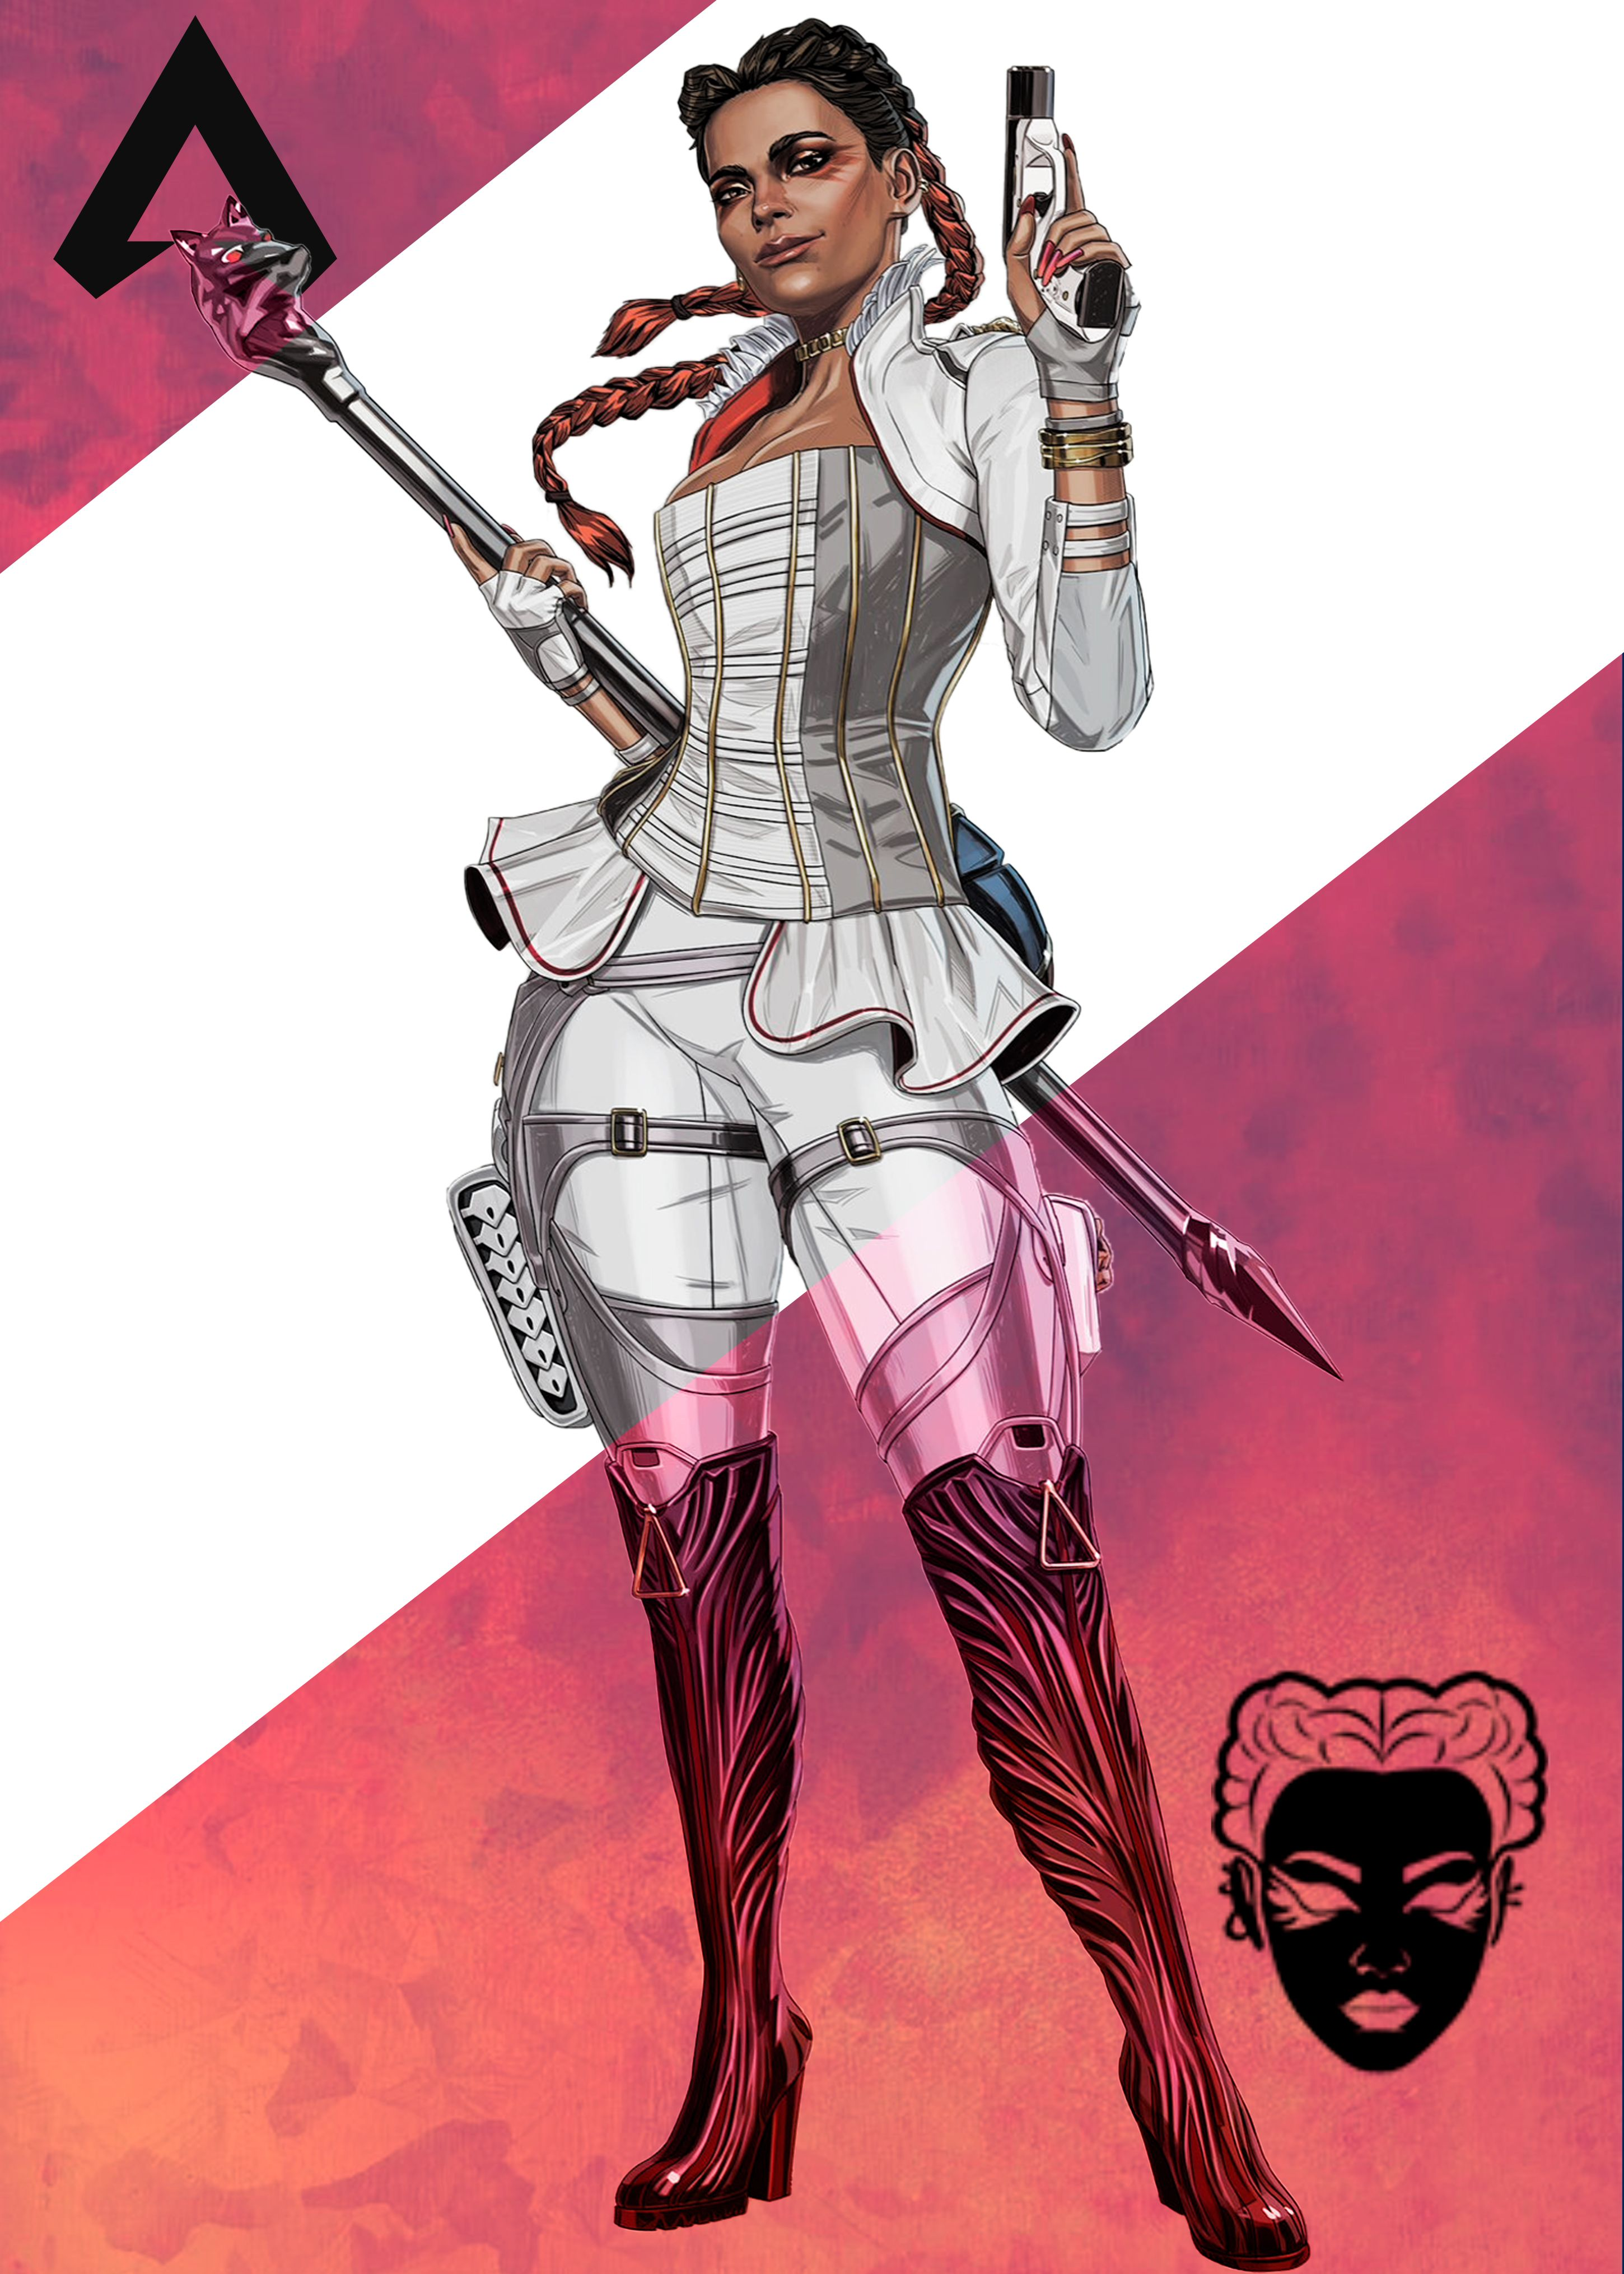 Loba Apex Legends Poster Print By Paul Draw Displate In 2020 Apex Girls Characters Legend